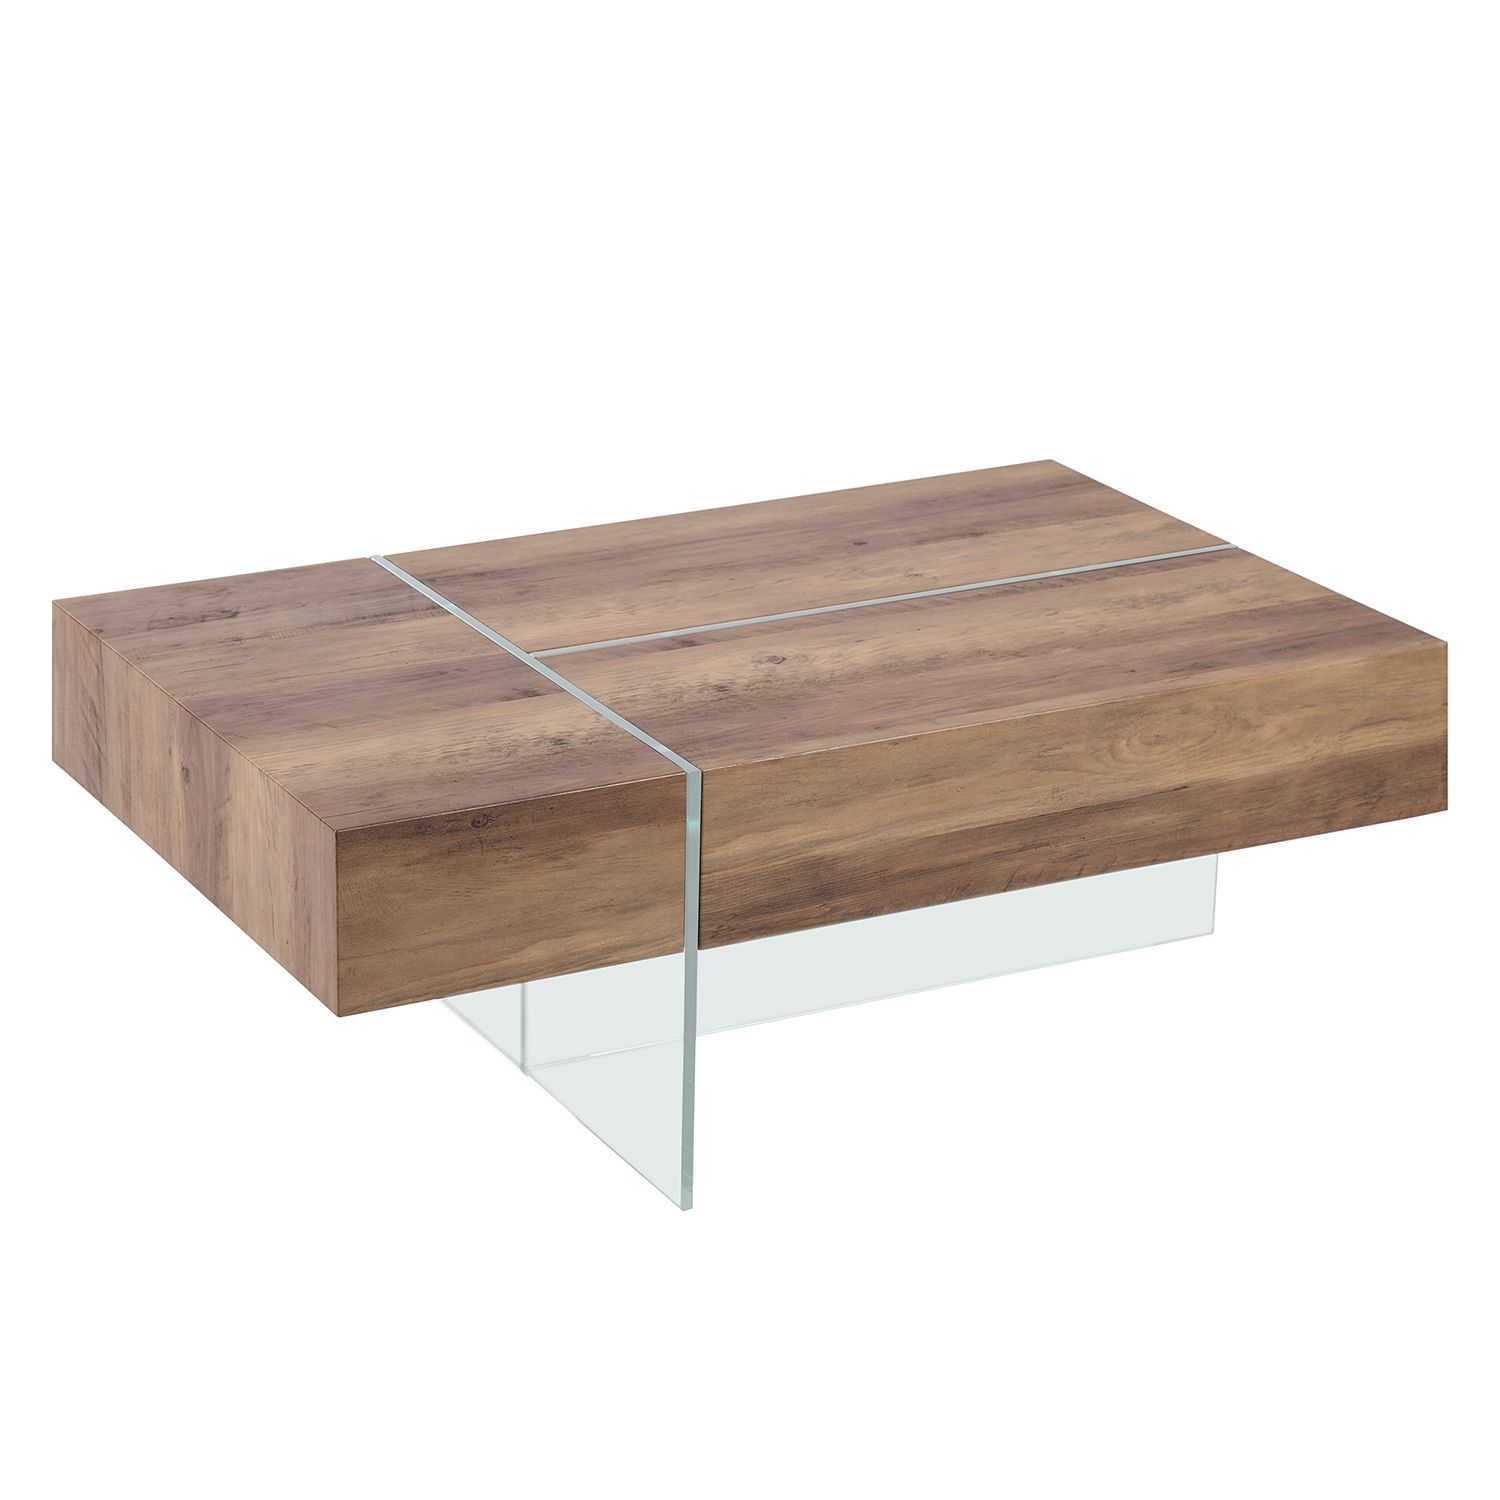 Table basse Arzon